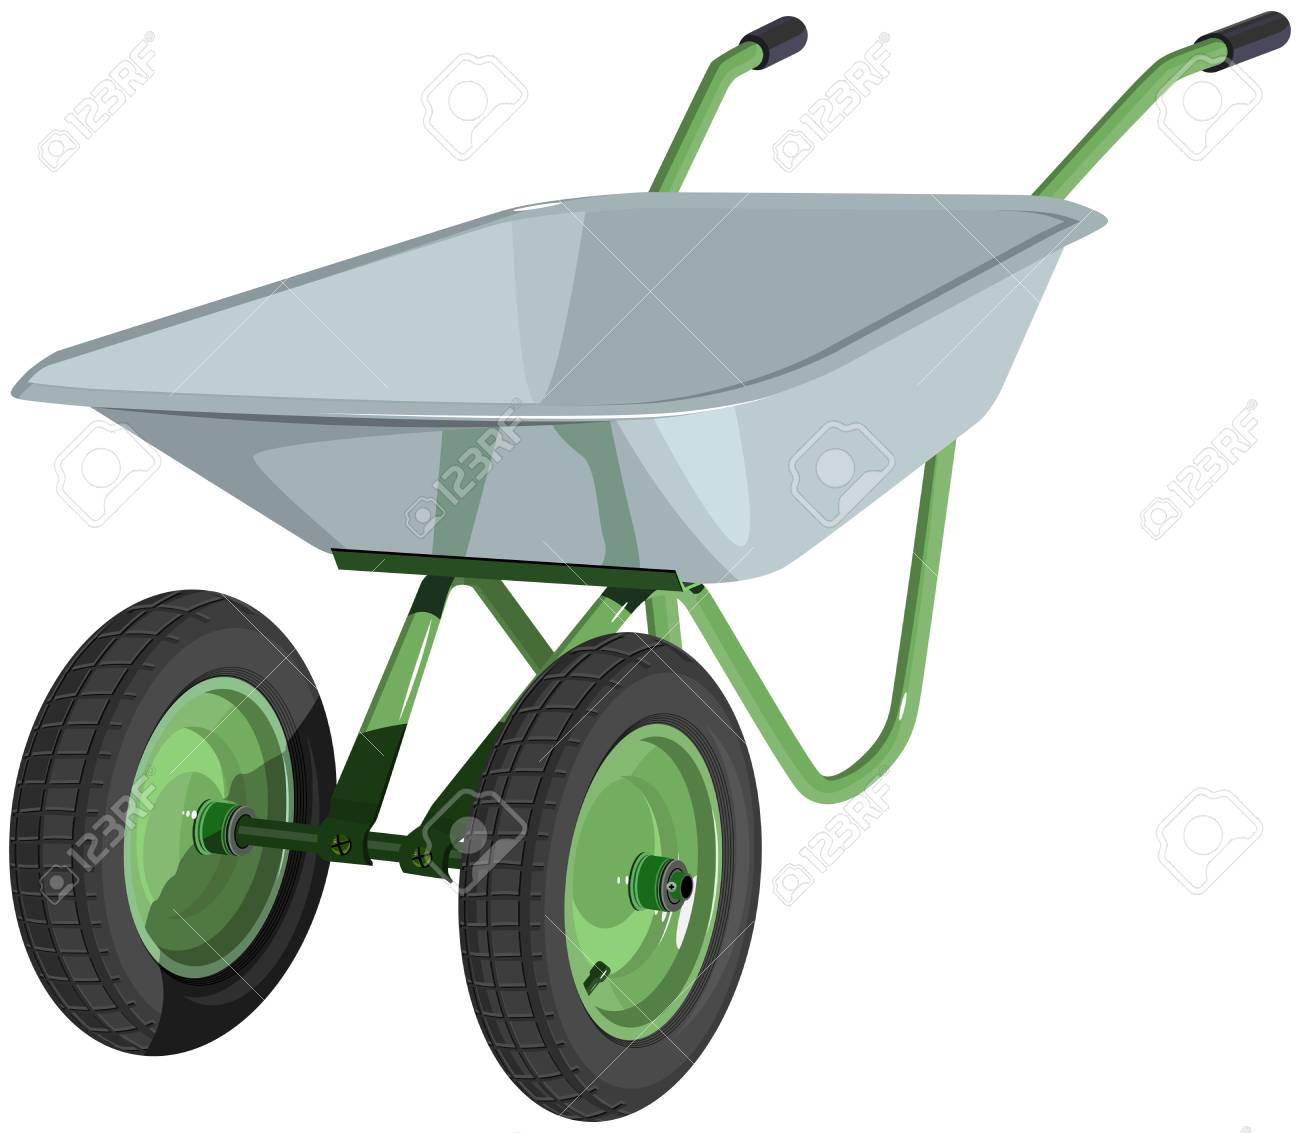 Metal wheelbarrow isolated  Illustration Stock Vector - 18789730